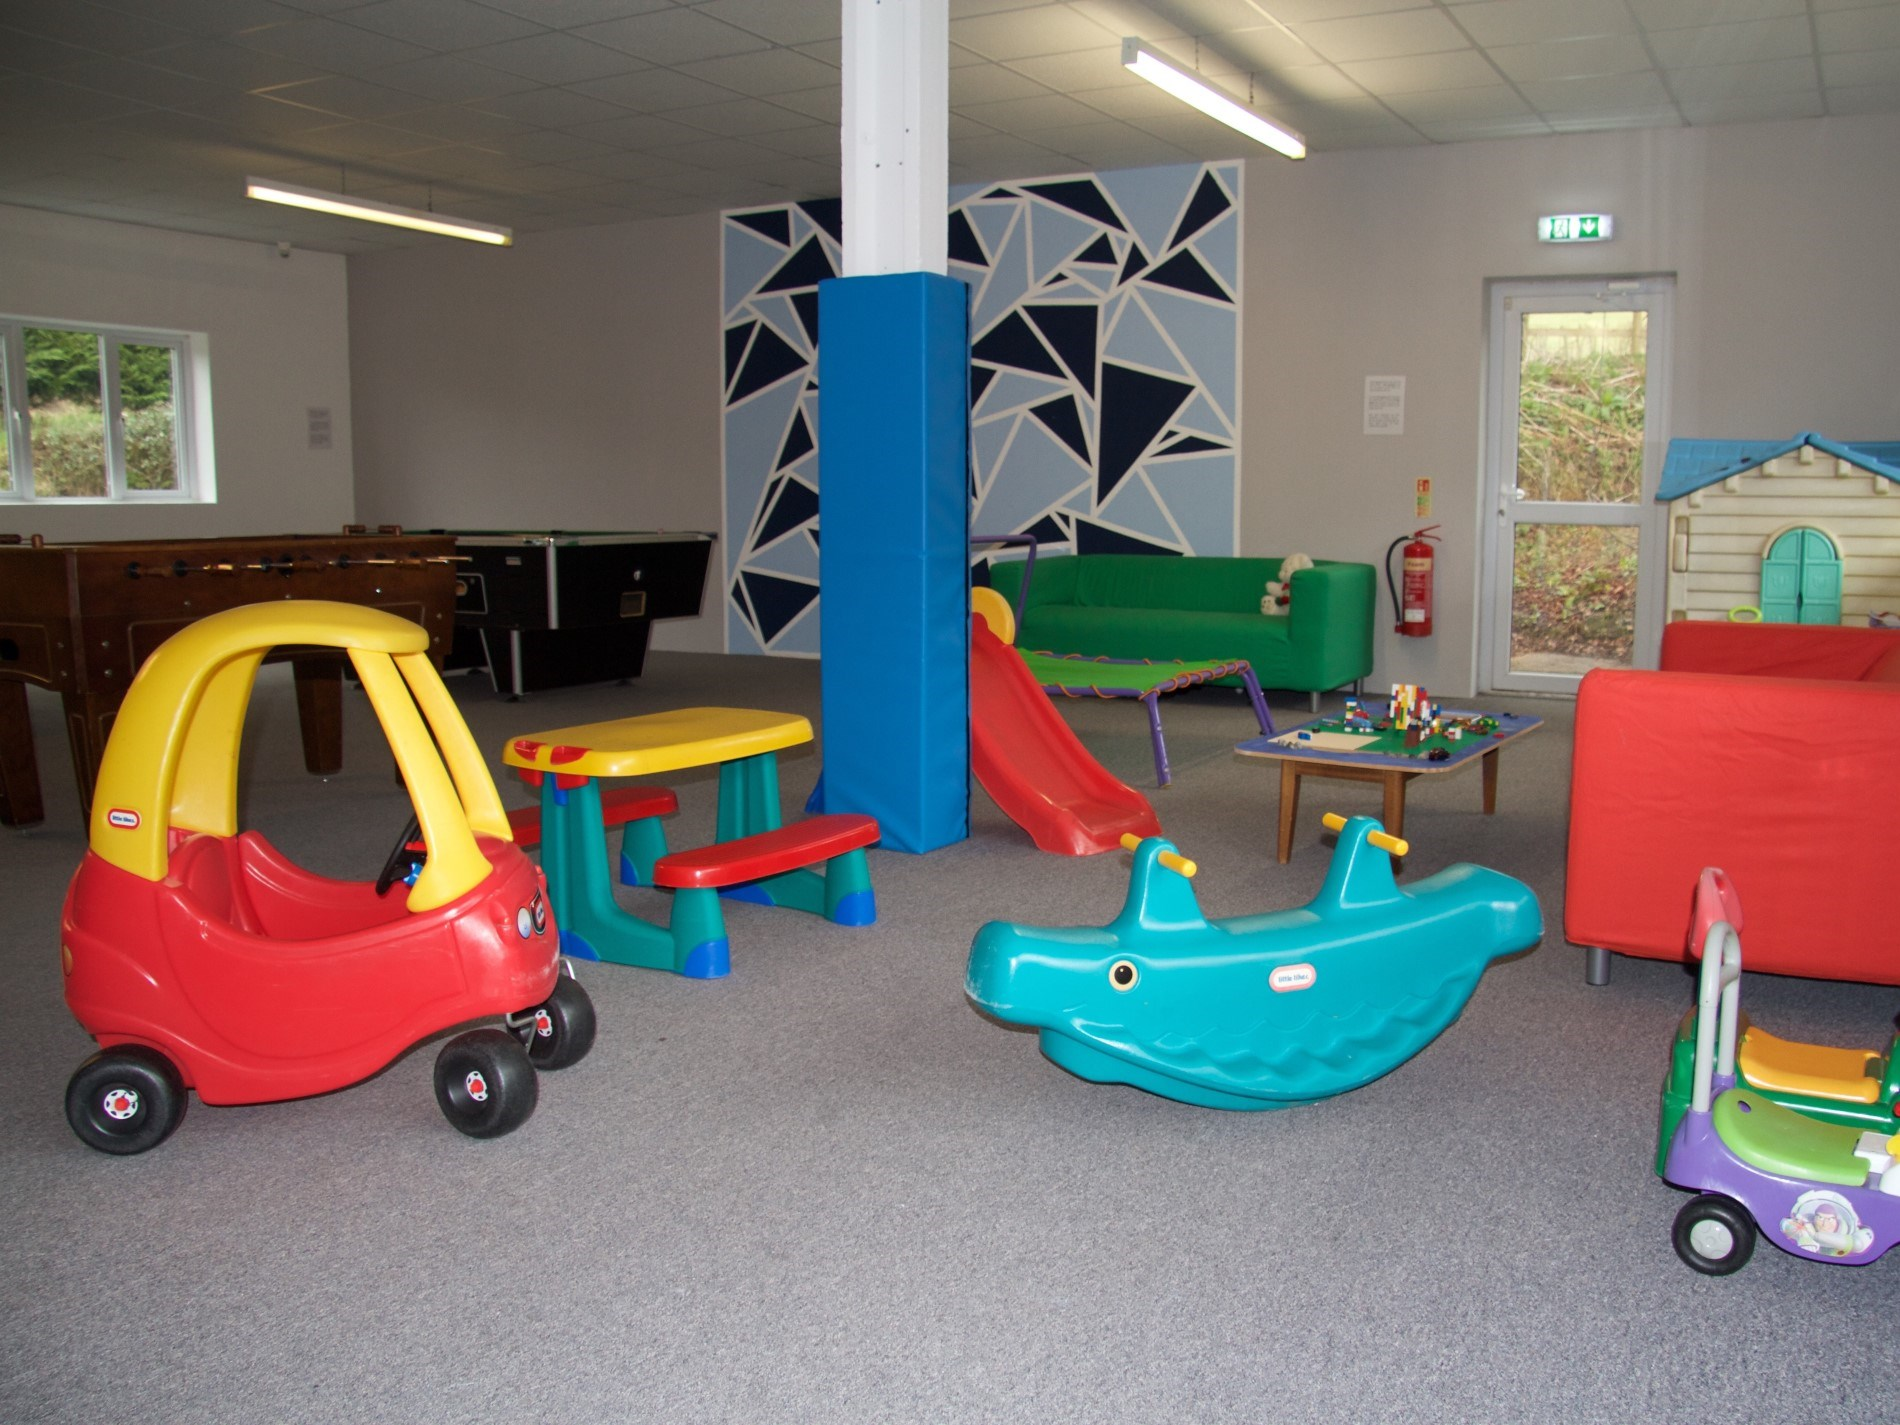 Shared indoor play area